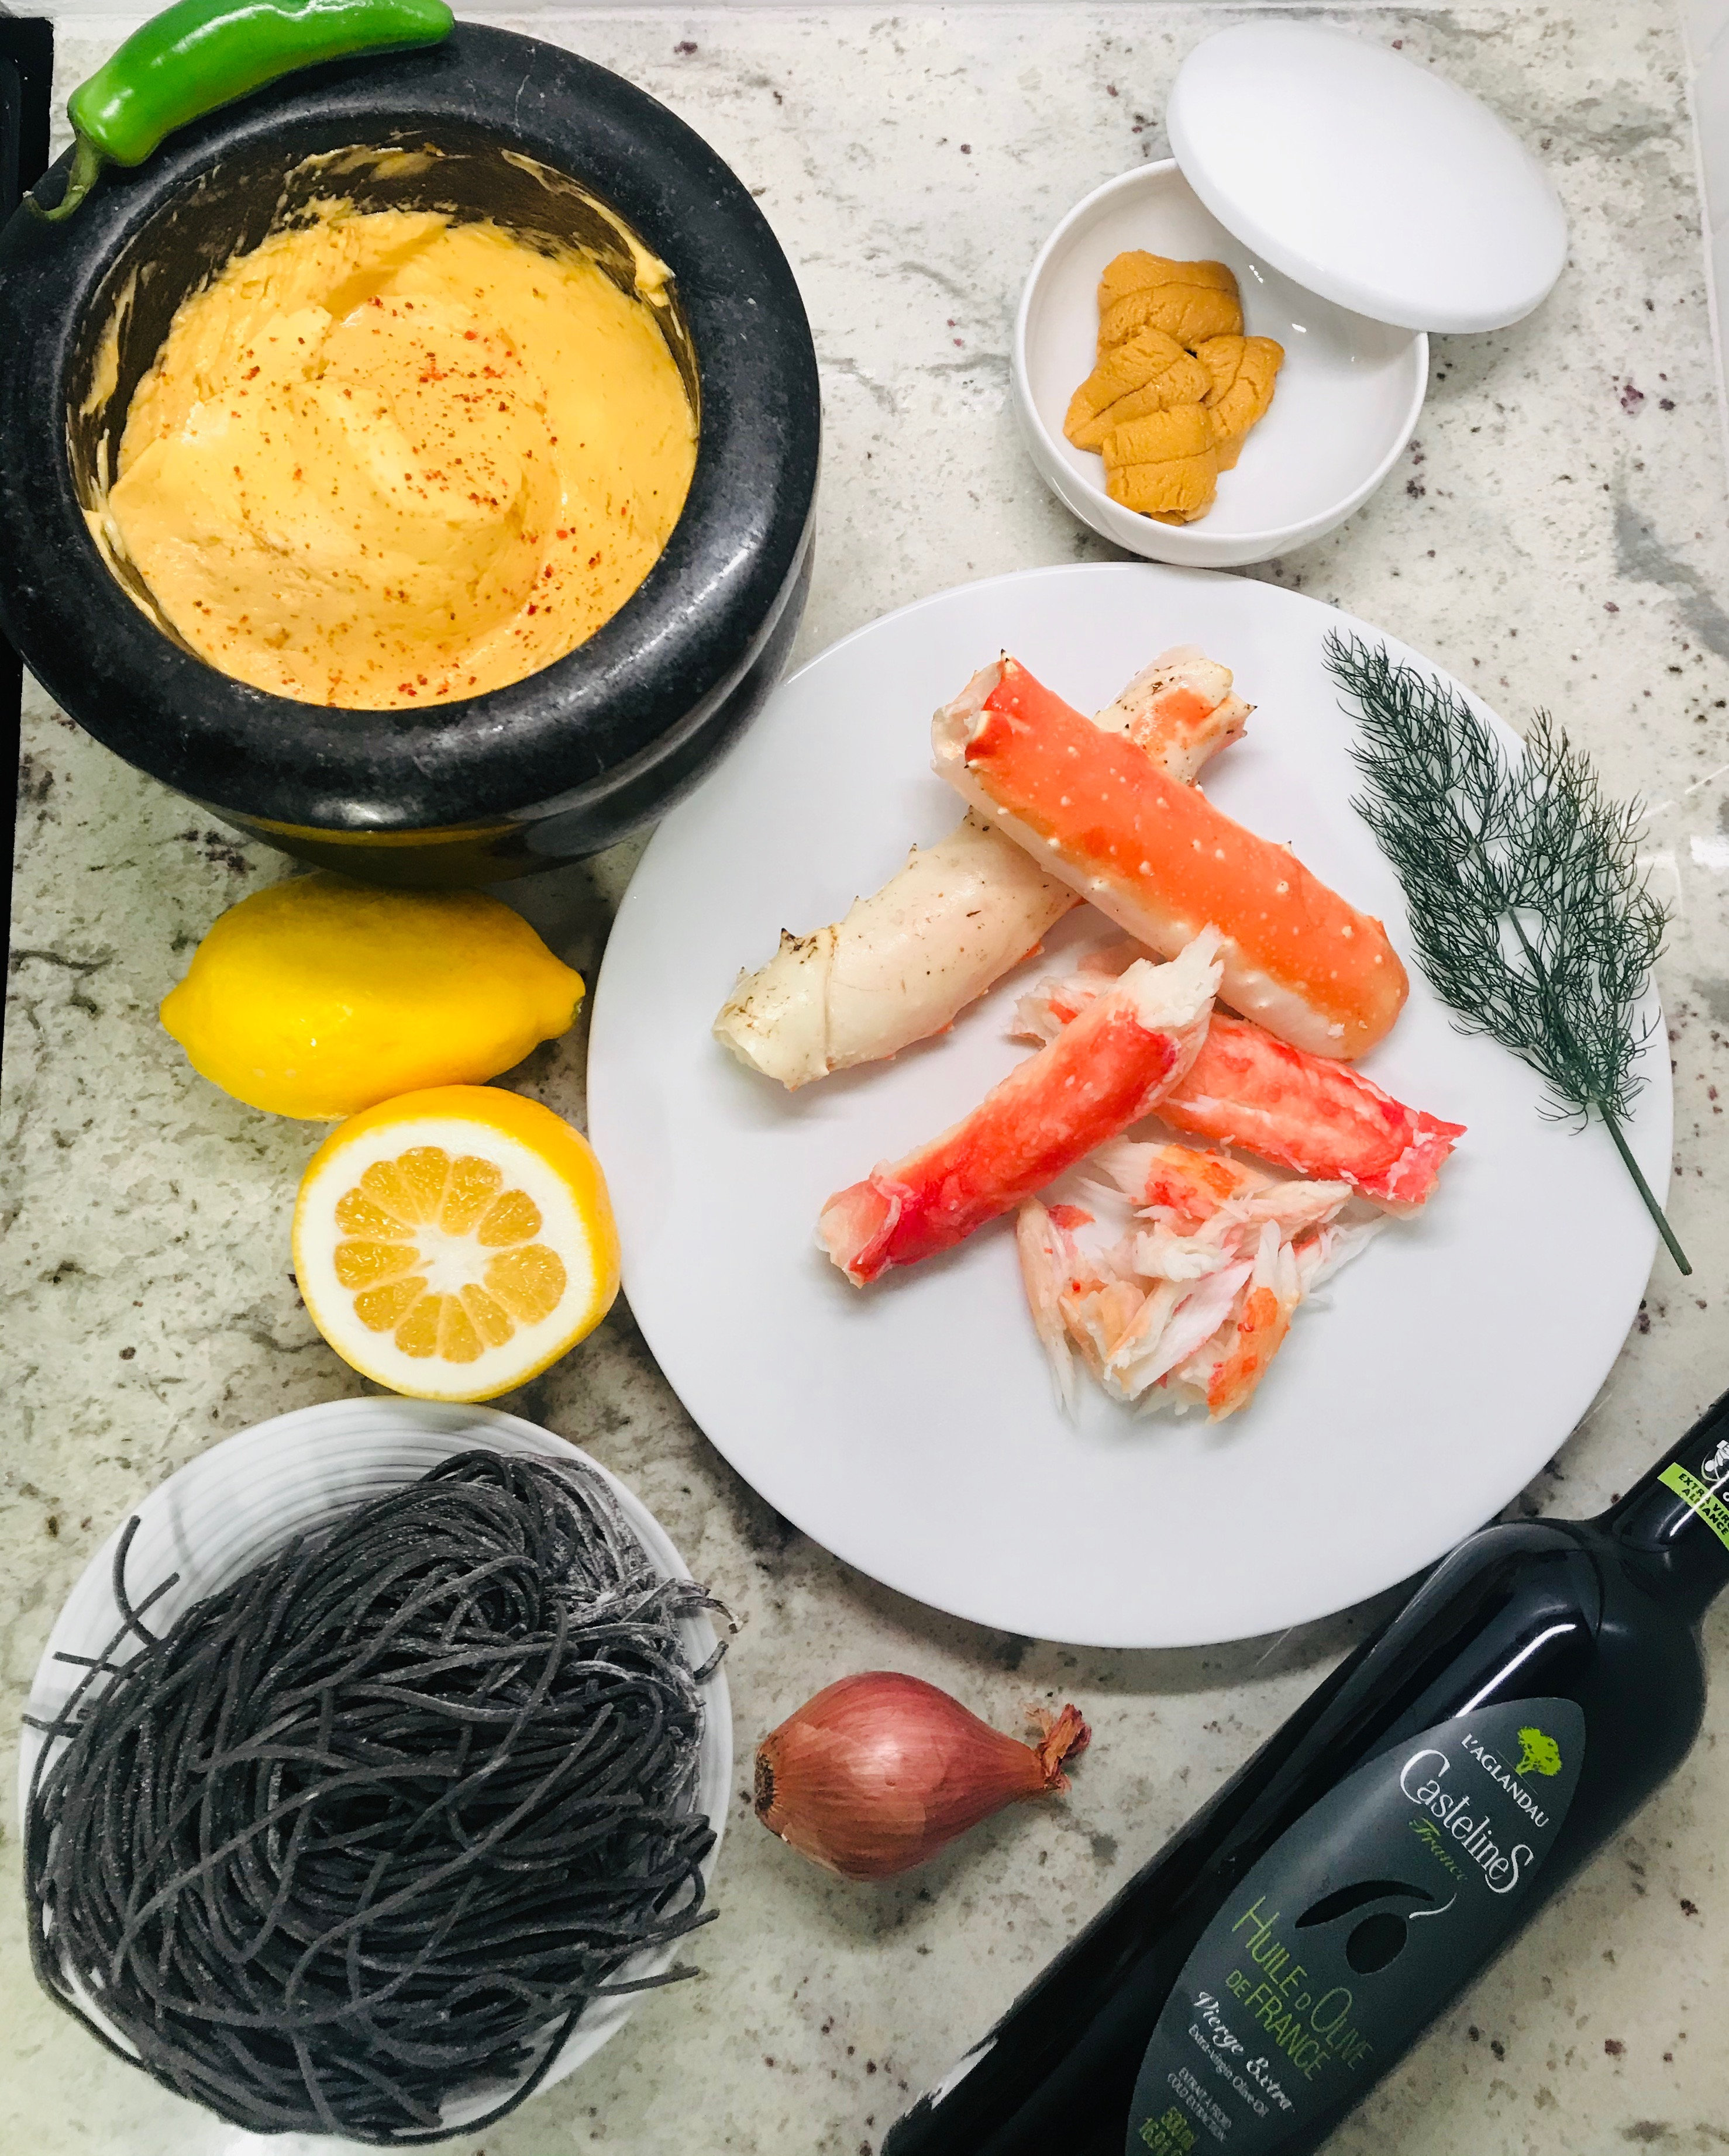 King Crab Pasta Meal Kit for Two